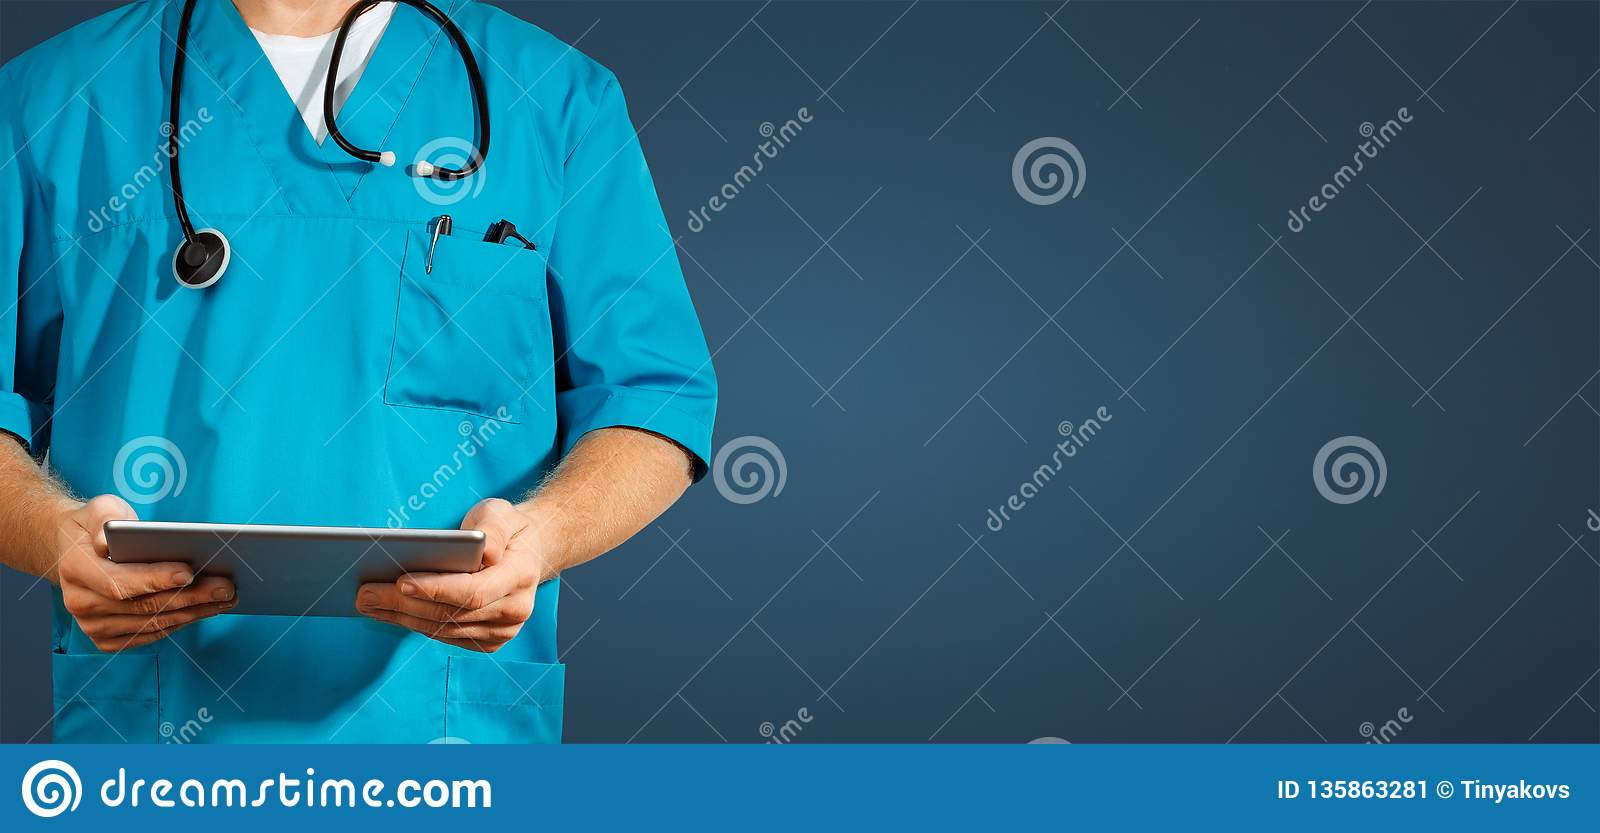 Concept of global medicine and healthcare. Unrecognizable doctor using digital tablet. Diagnostics and modern technology on blue